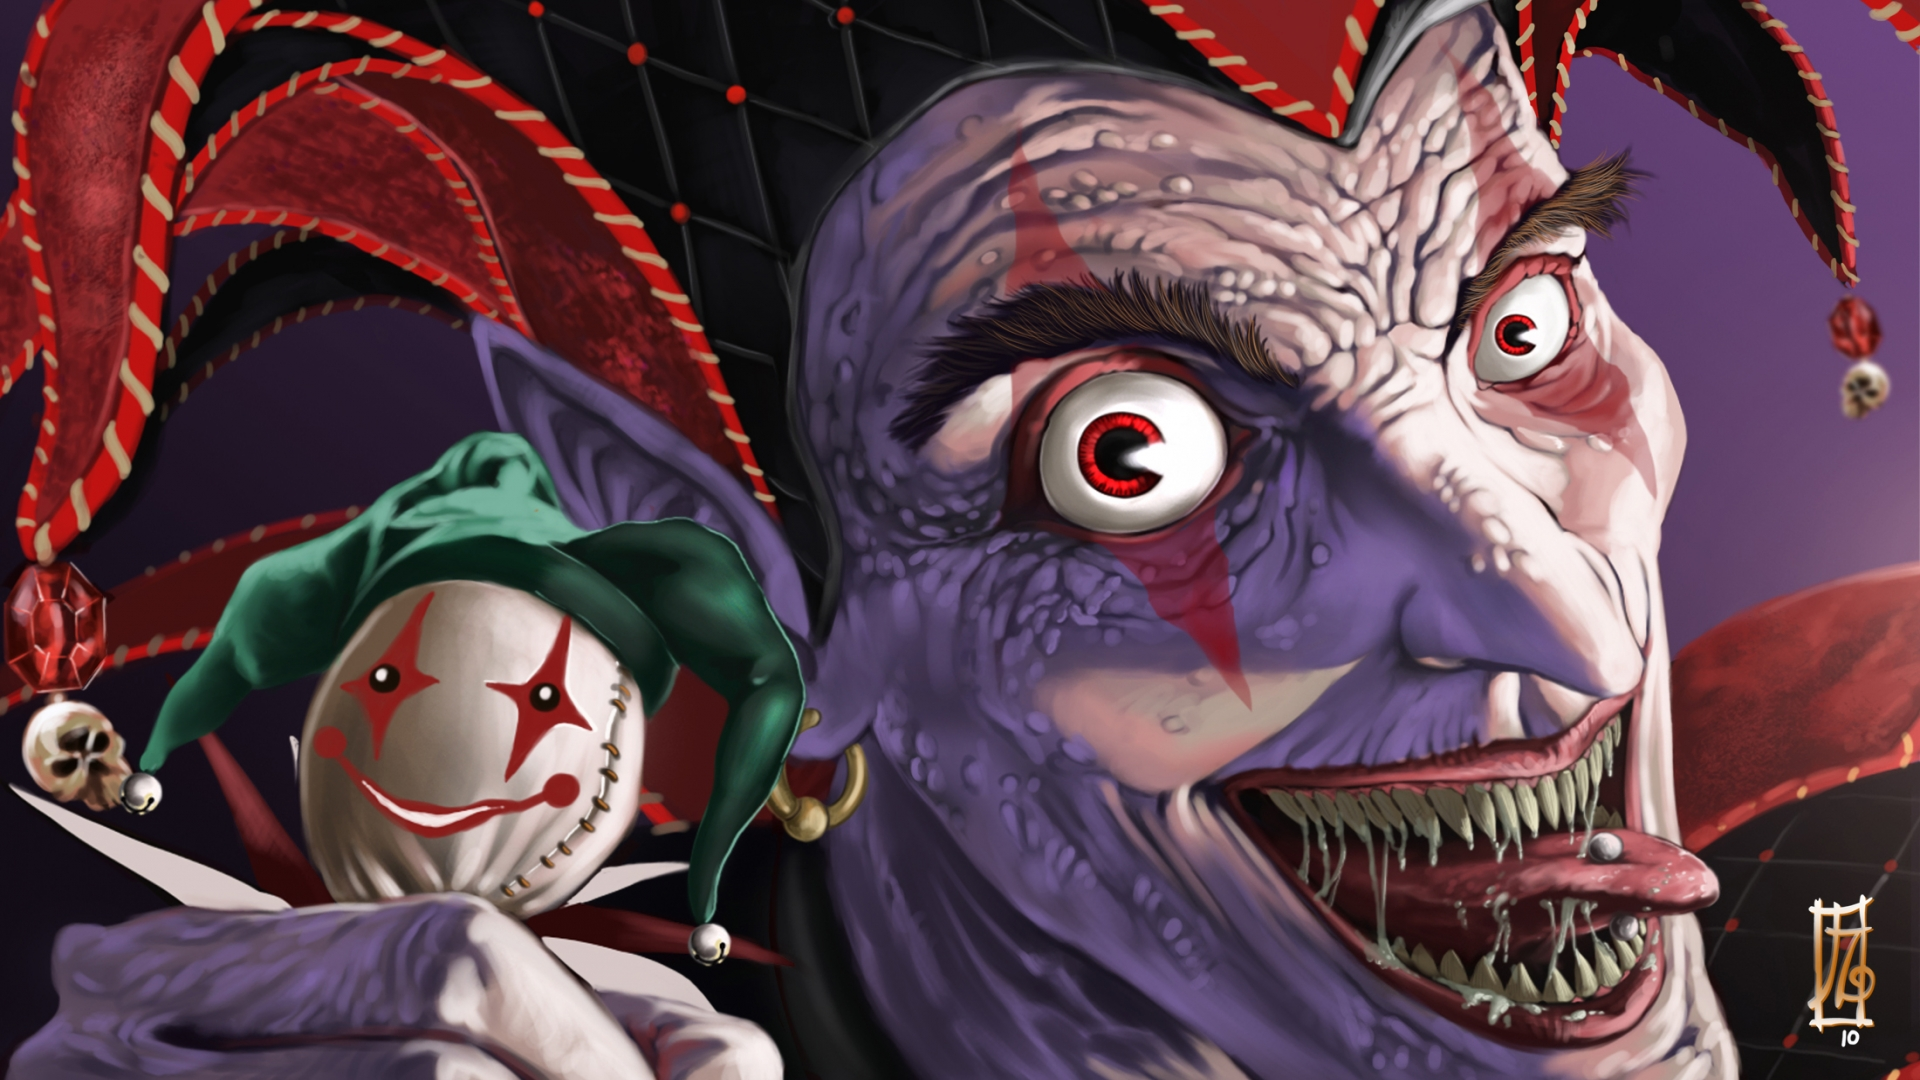 spooky evil fangs makeup clown faves eyes pov art cartoon wallpaper 1920x1080